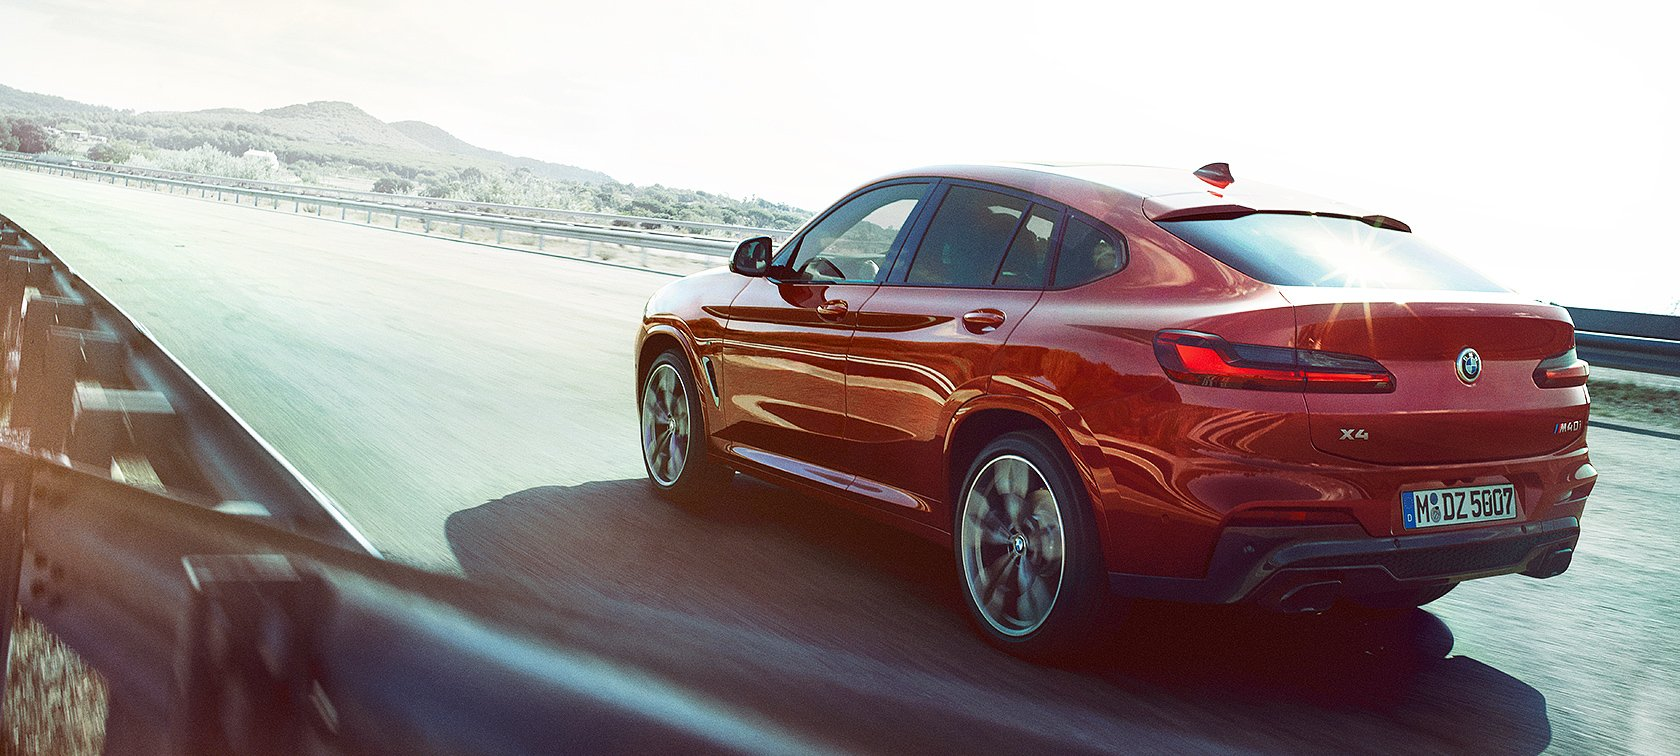 THE X4